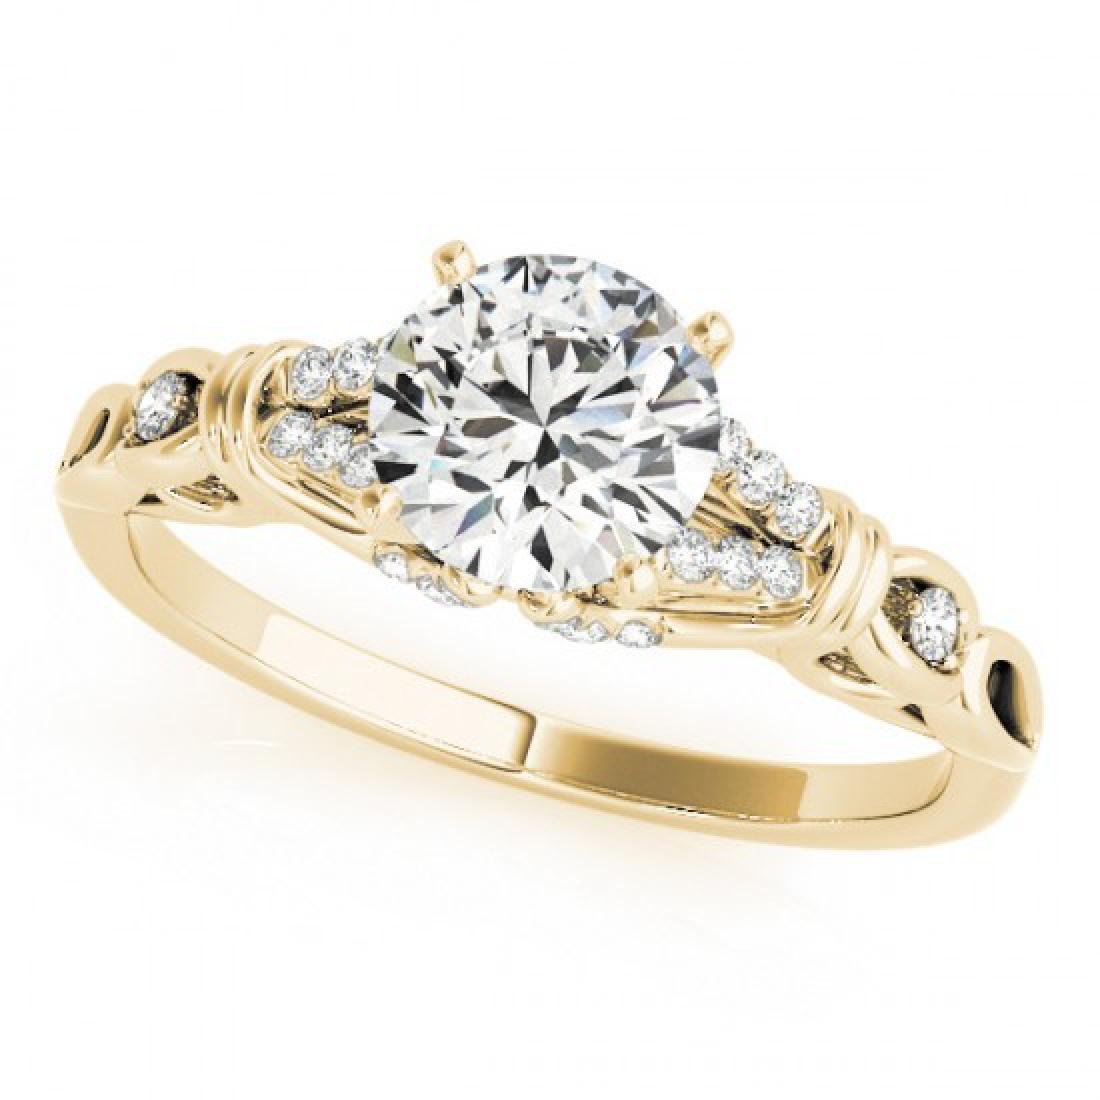 0.95 CTW Certified VS/SI Diamond Solitaire Ring 14K